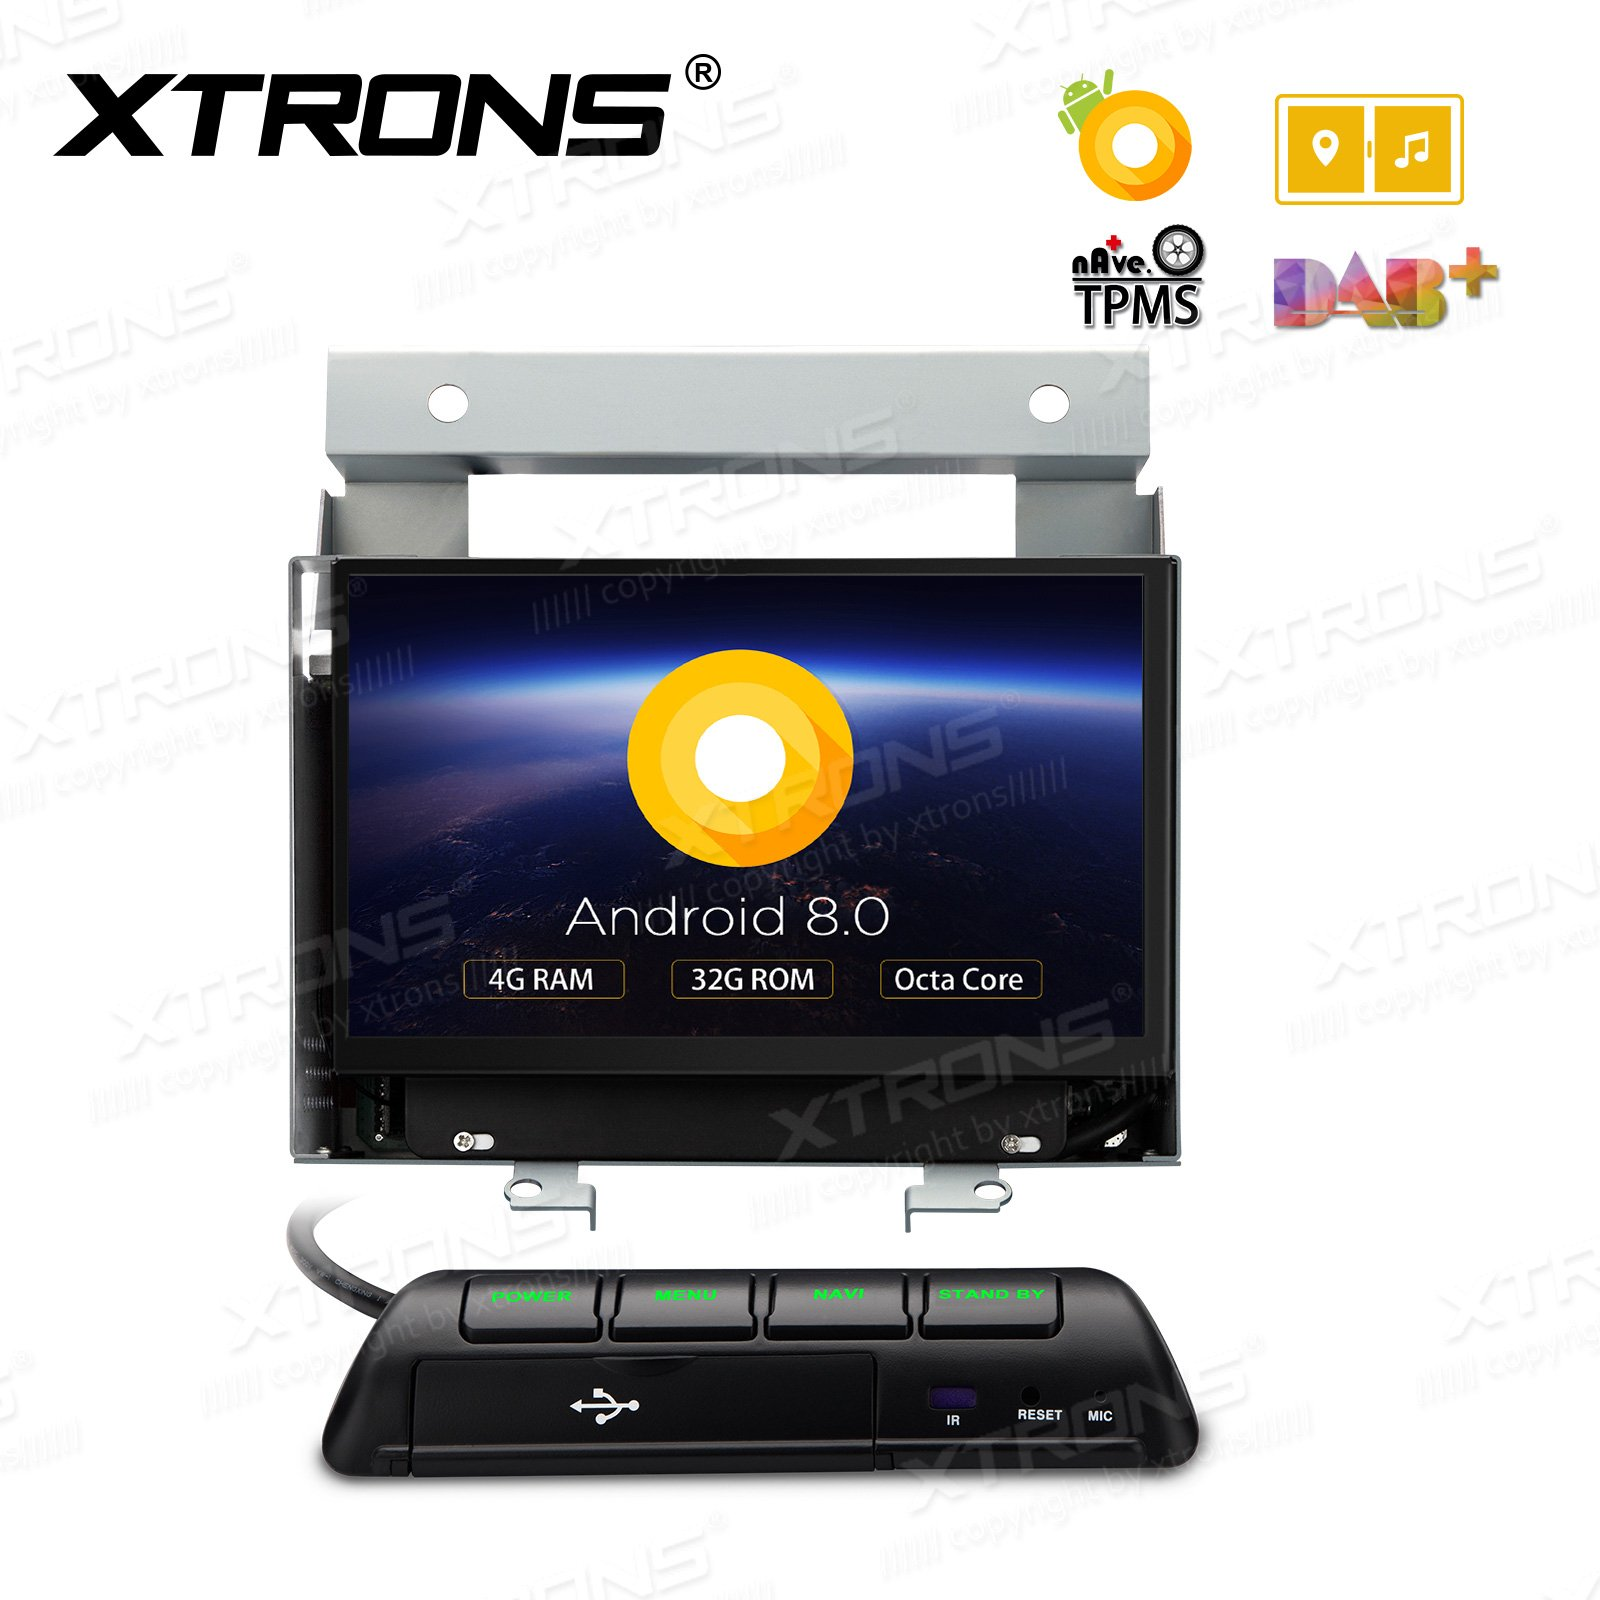 XTRONS 7'' Android 8.0 Octa Core 4G RAM 32G ROM HD DVR Car Stereo Player Tire Pressure Monitoring Wifi OBD2 for Land Rover Freelander 2